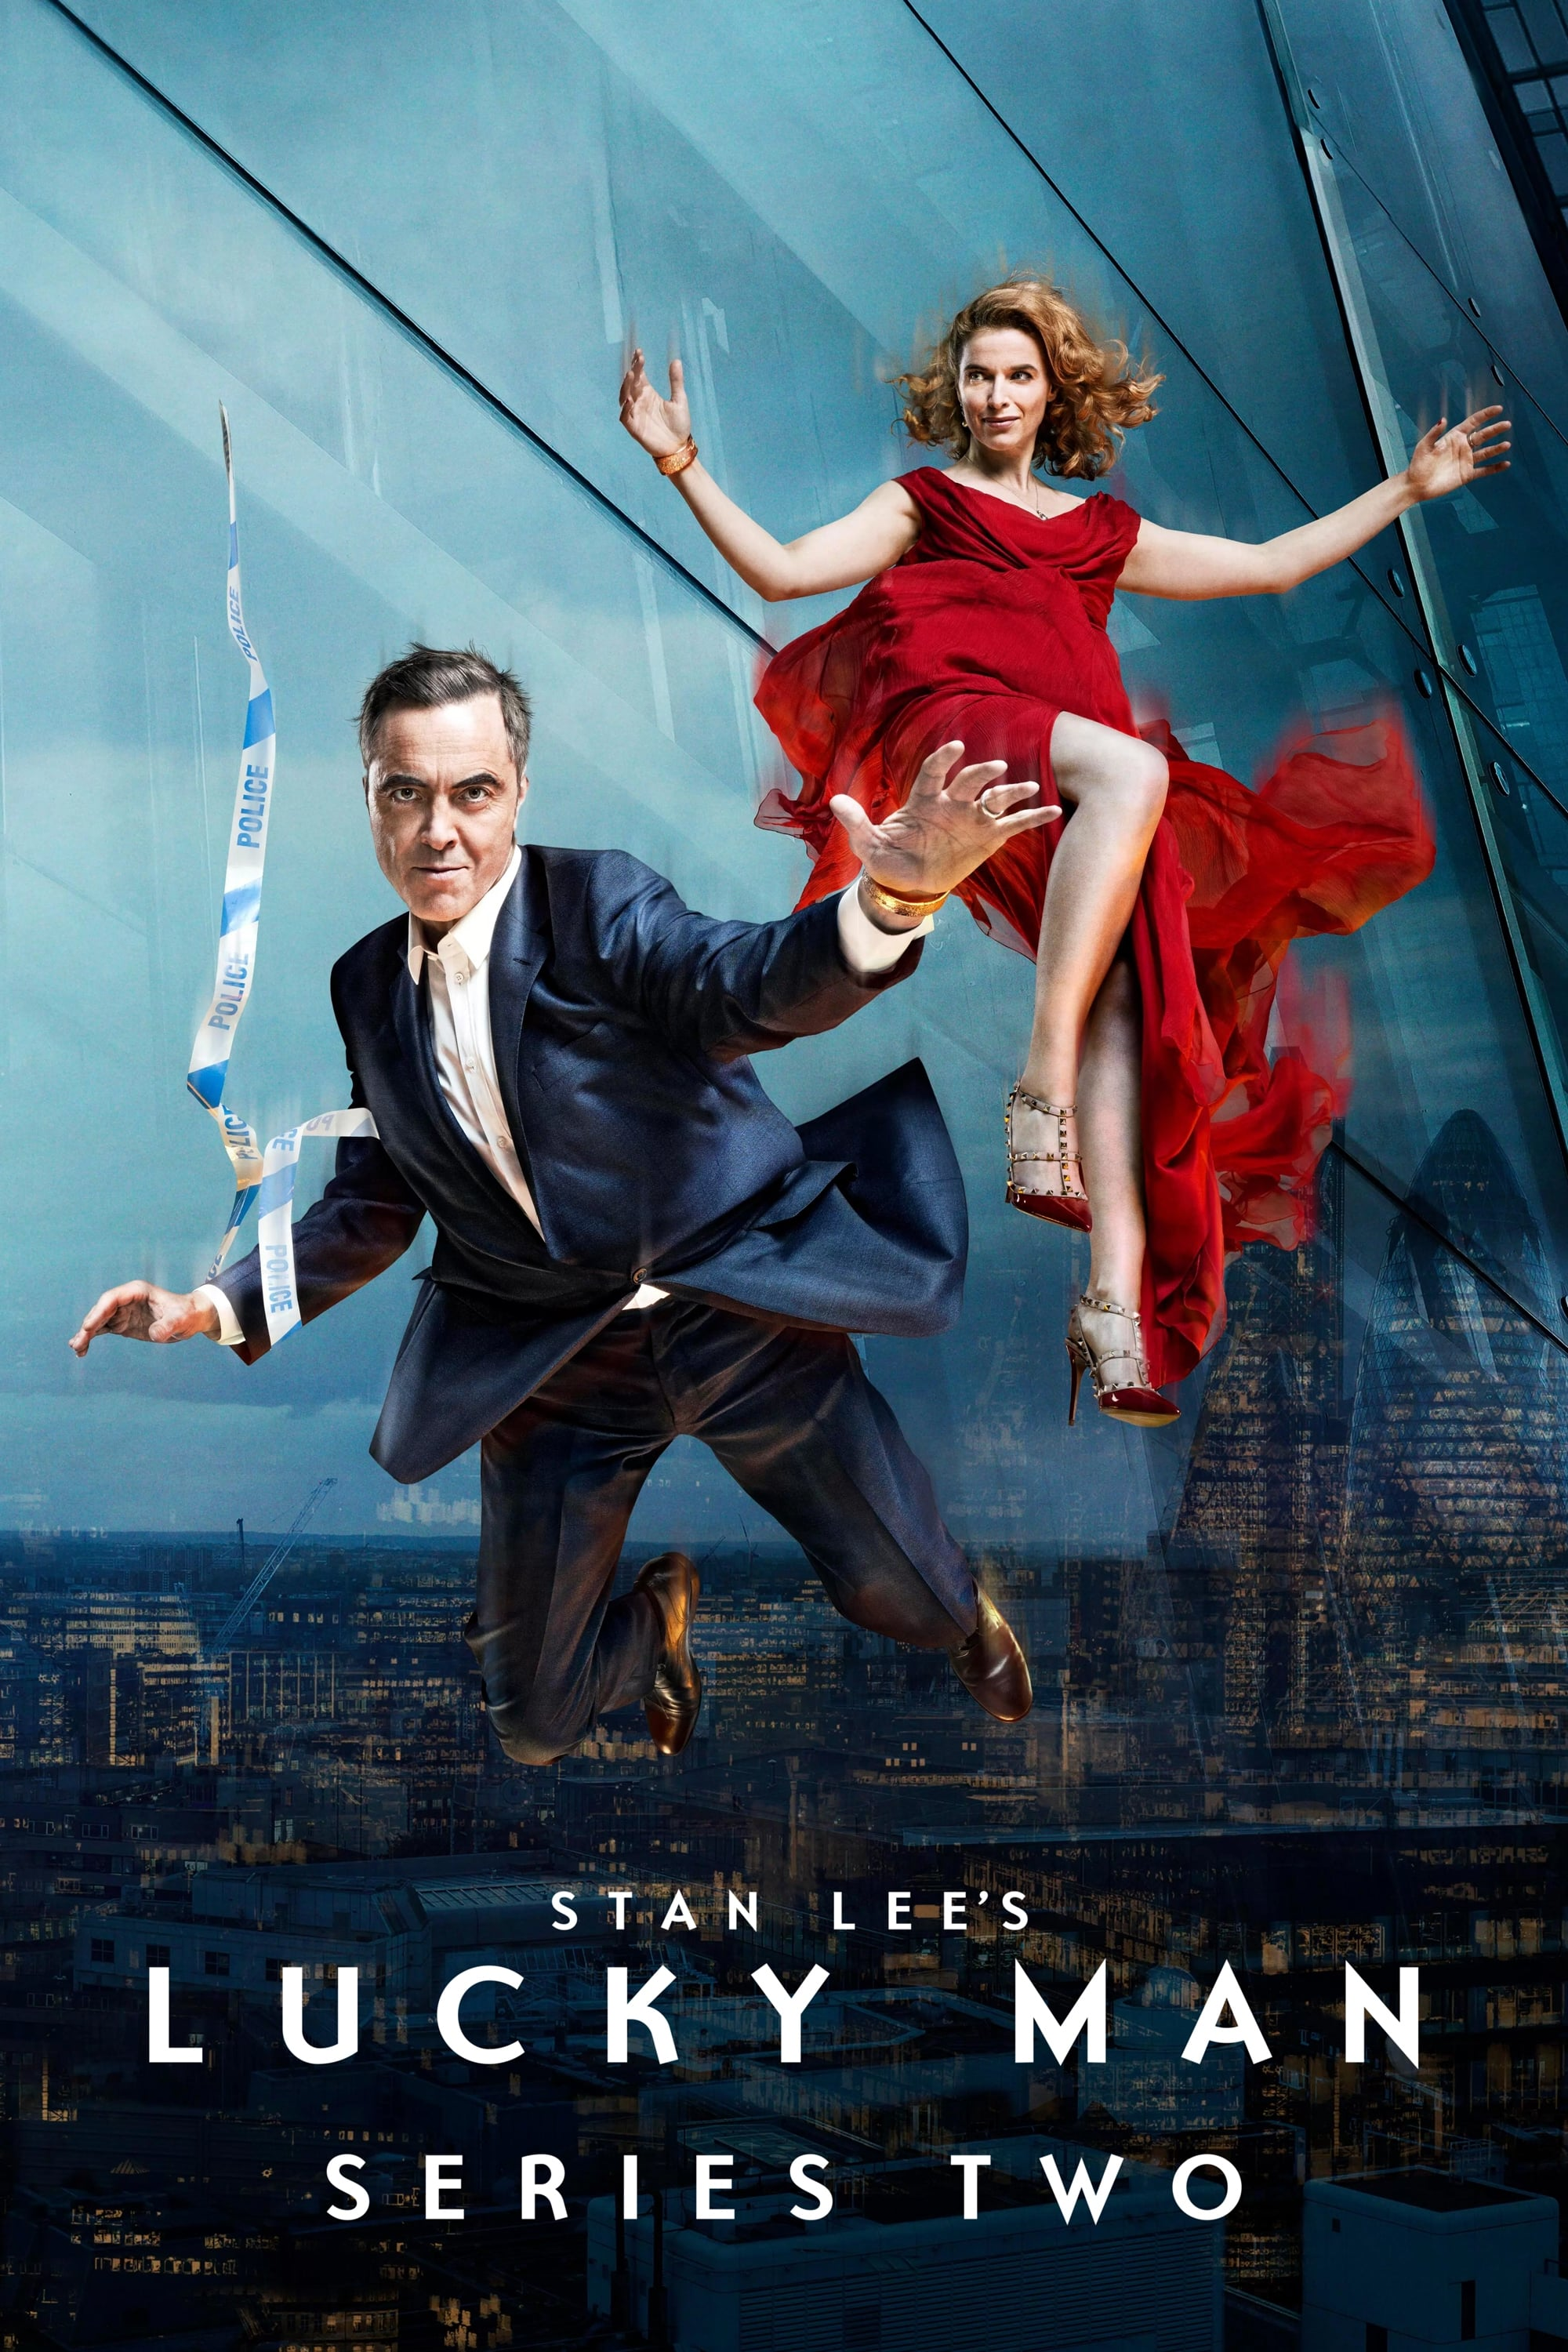 Stan Lee's Lucky Man Season 2